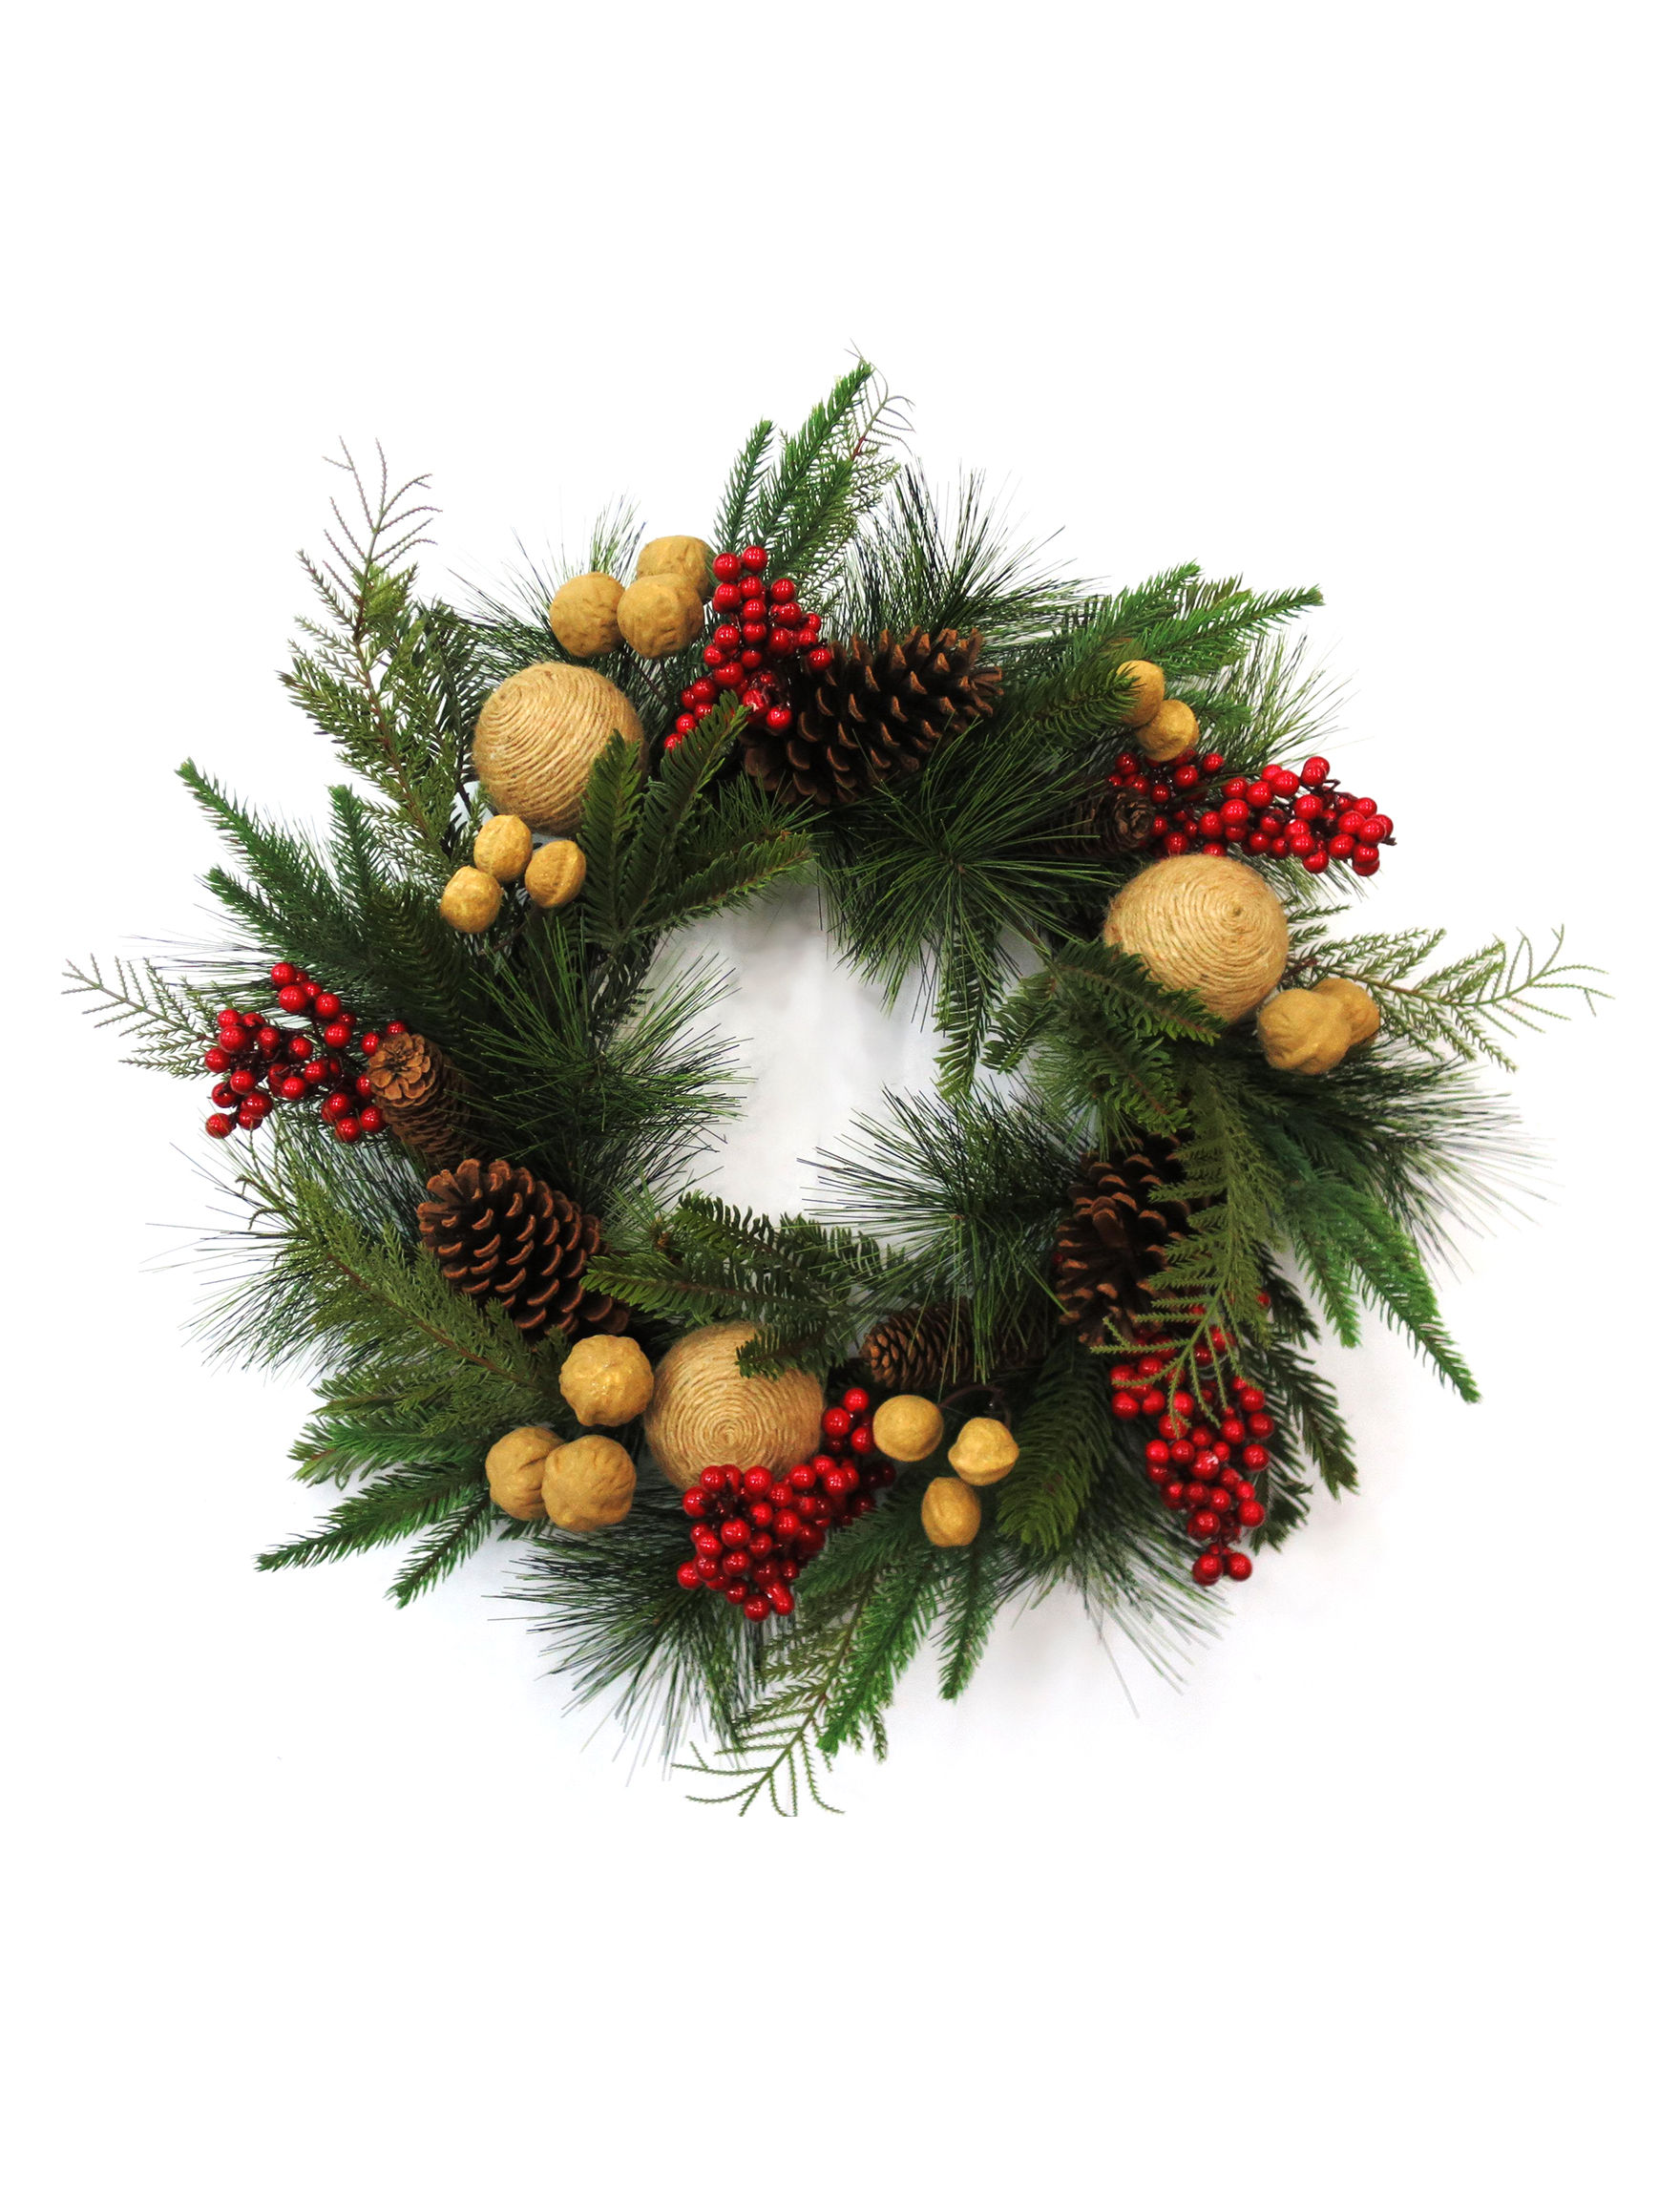 Evernoble Limit Green Multi Wreaths & Garland Holiday Decor